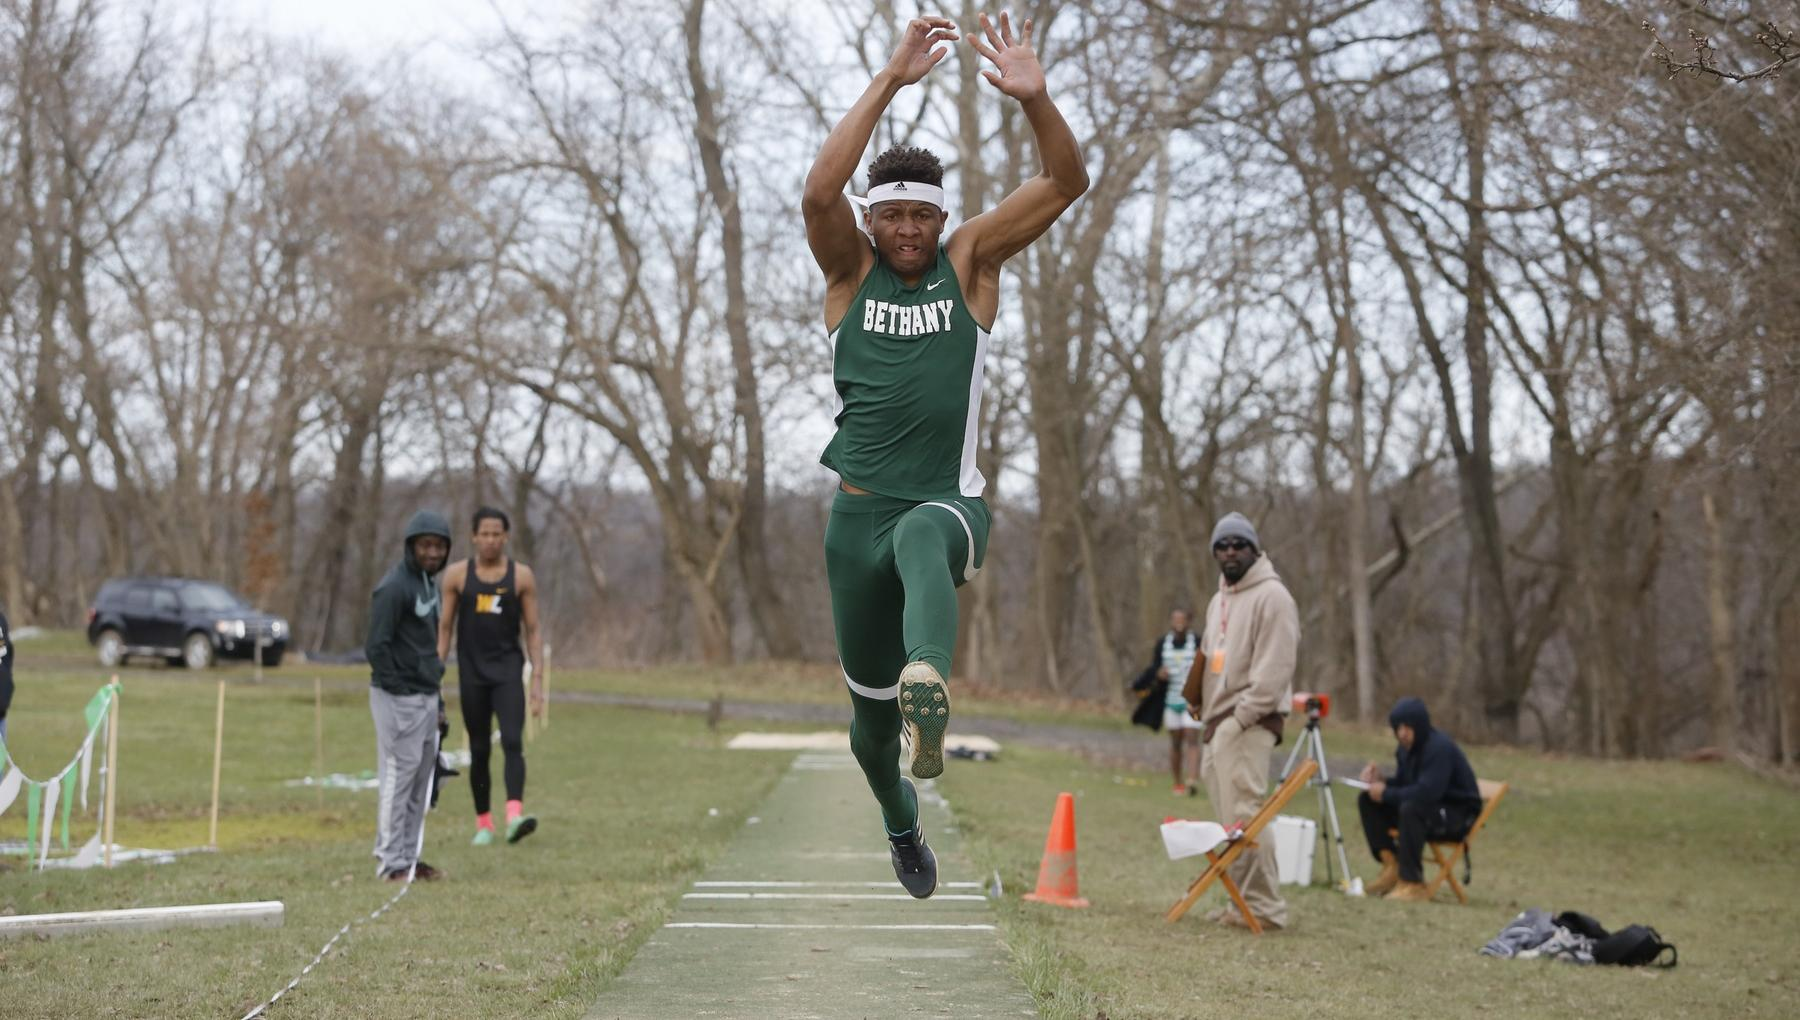 Sallah-Mohammed breaks two school records at ECAC Outdoors